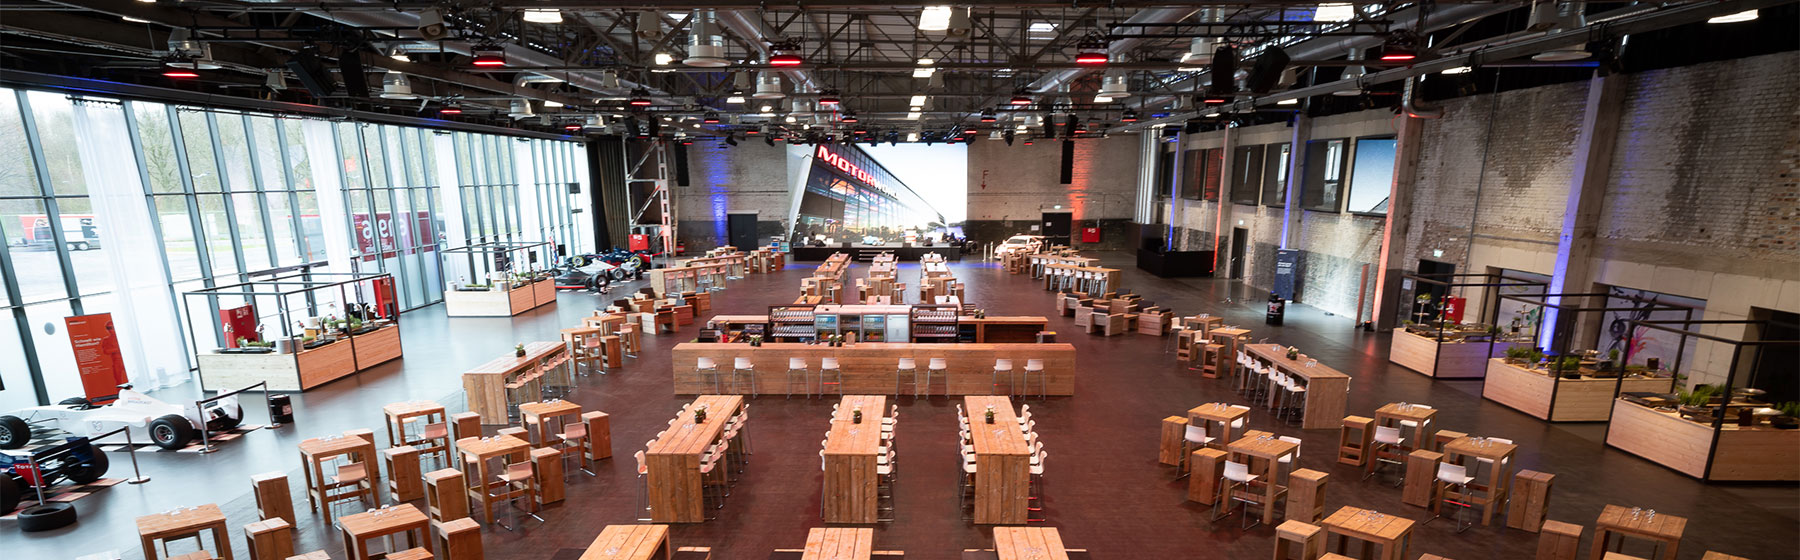 Eventhalle 4-Takt-Hangar Eventlocation Motorworld Köln | Rheinland